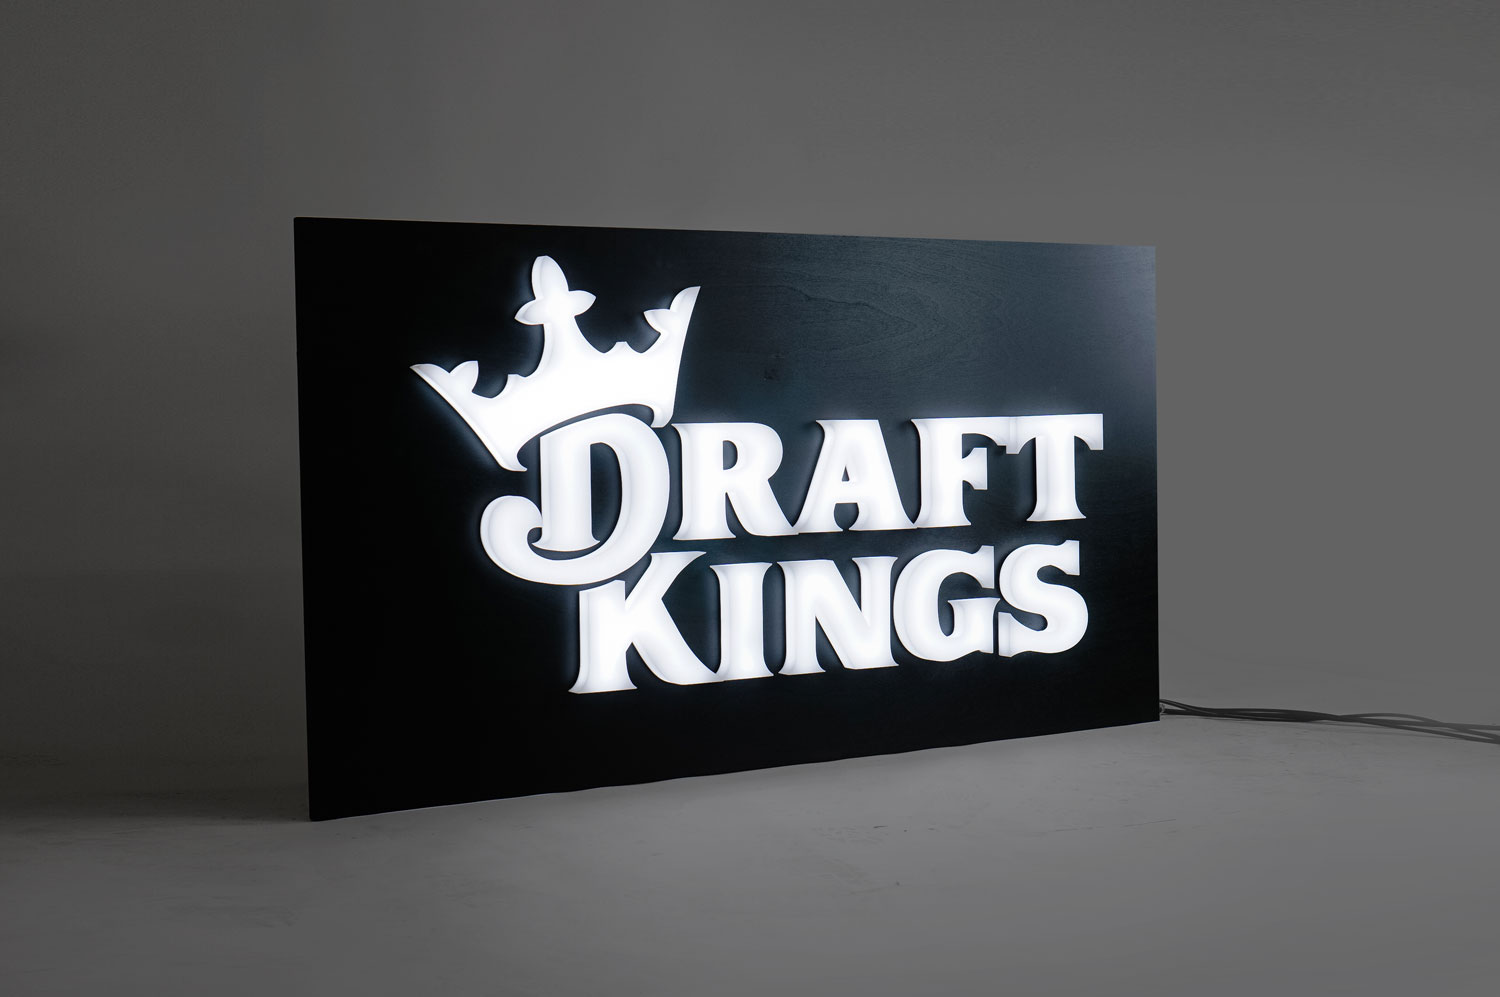 Illuminated, face-lit white logo on a black painted backer/wall for the San Francisco office of Draft Kings, an American daily fantasy sports contest and sports betting provider.